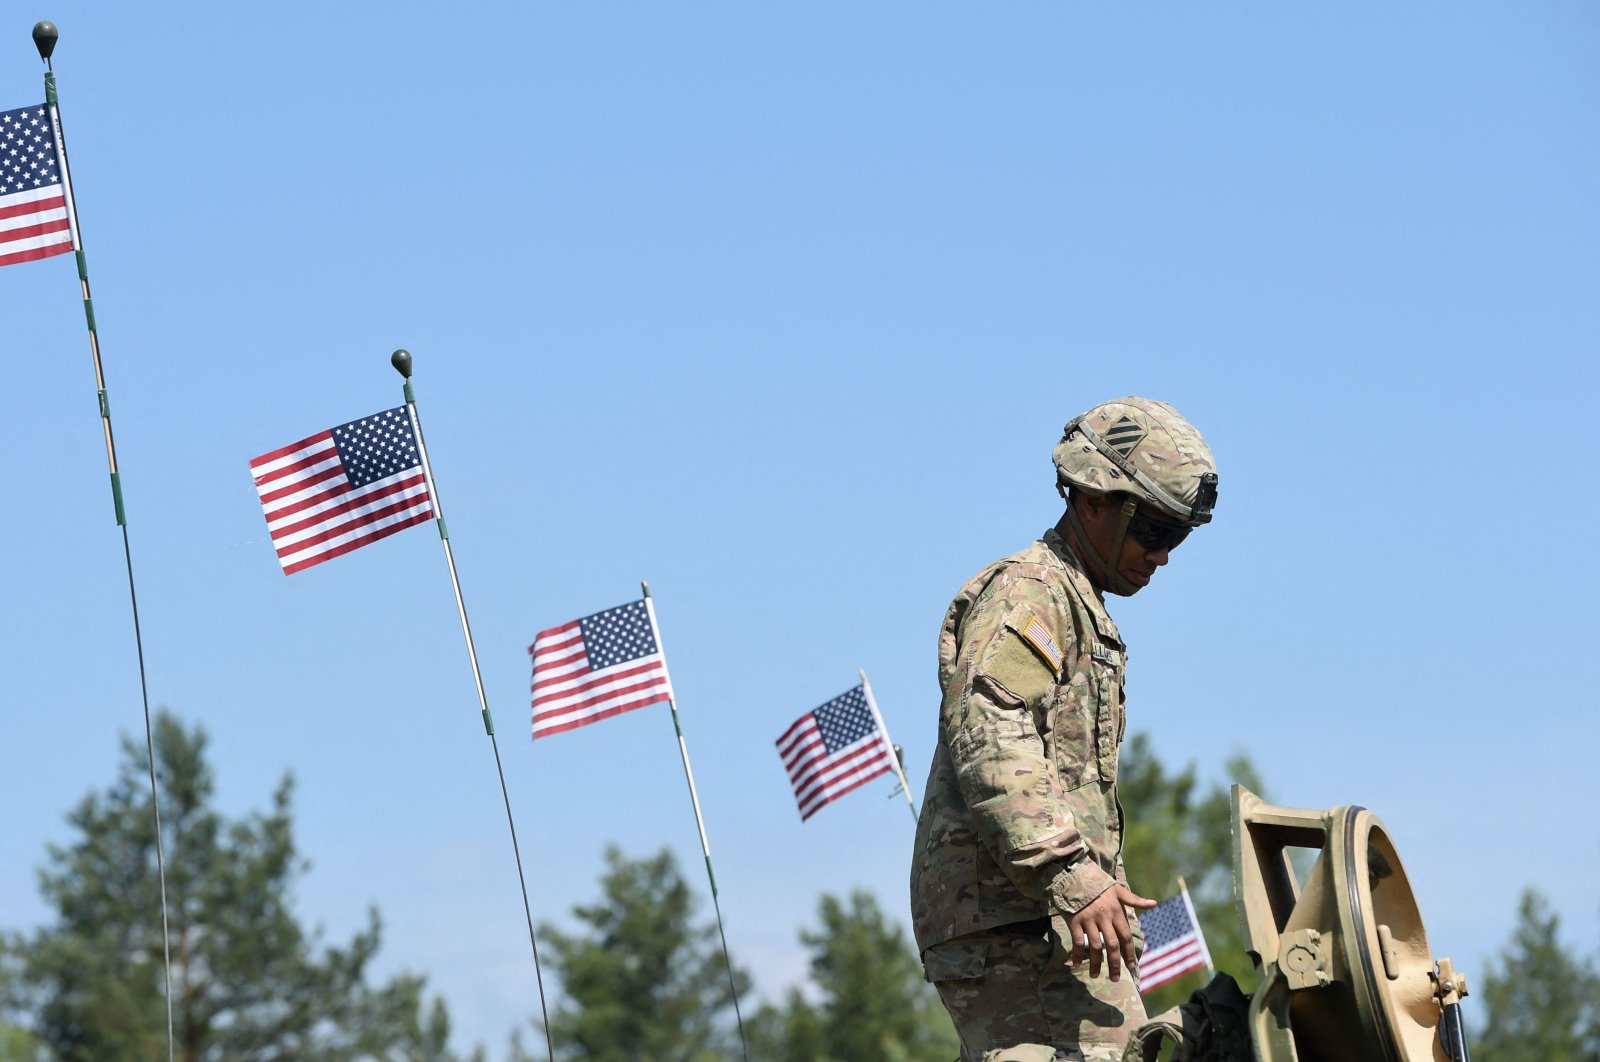 An American soldier stands next to U.S. flags at the military training area in Grafenwohr, near Eschenbach, southern Germany, May 11, 2016. (AFP Photo)